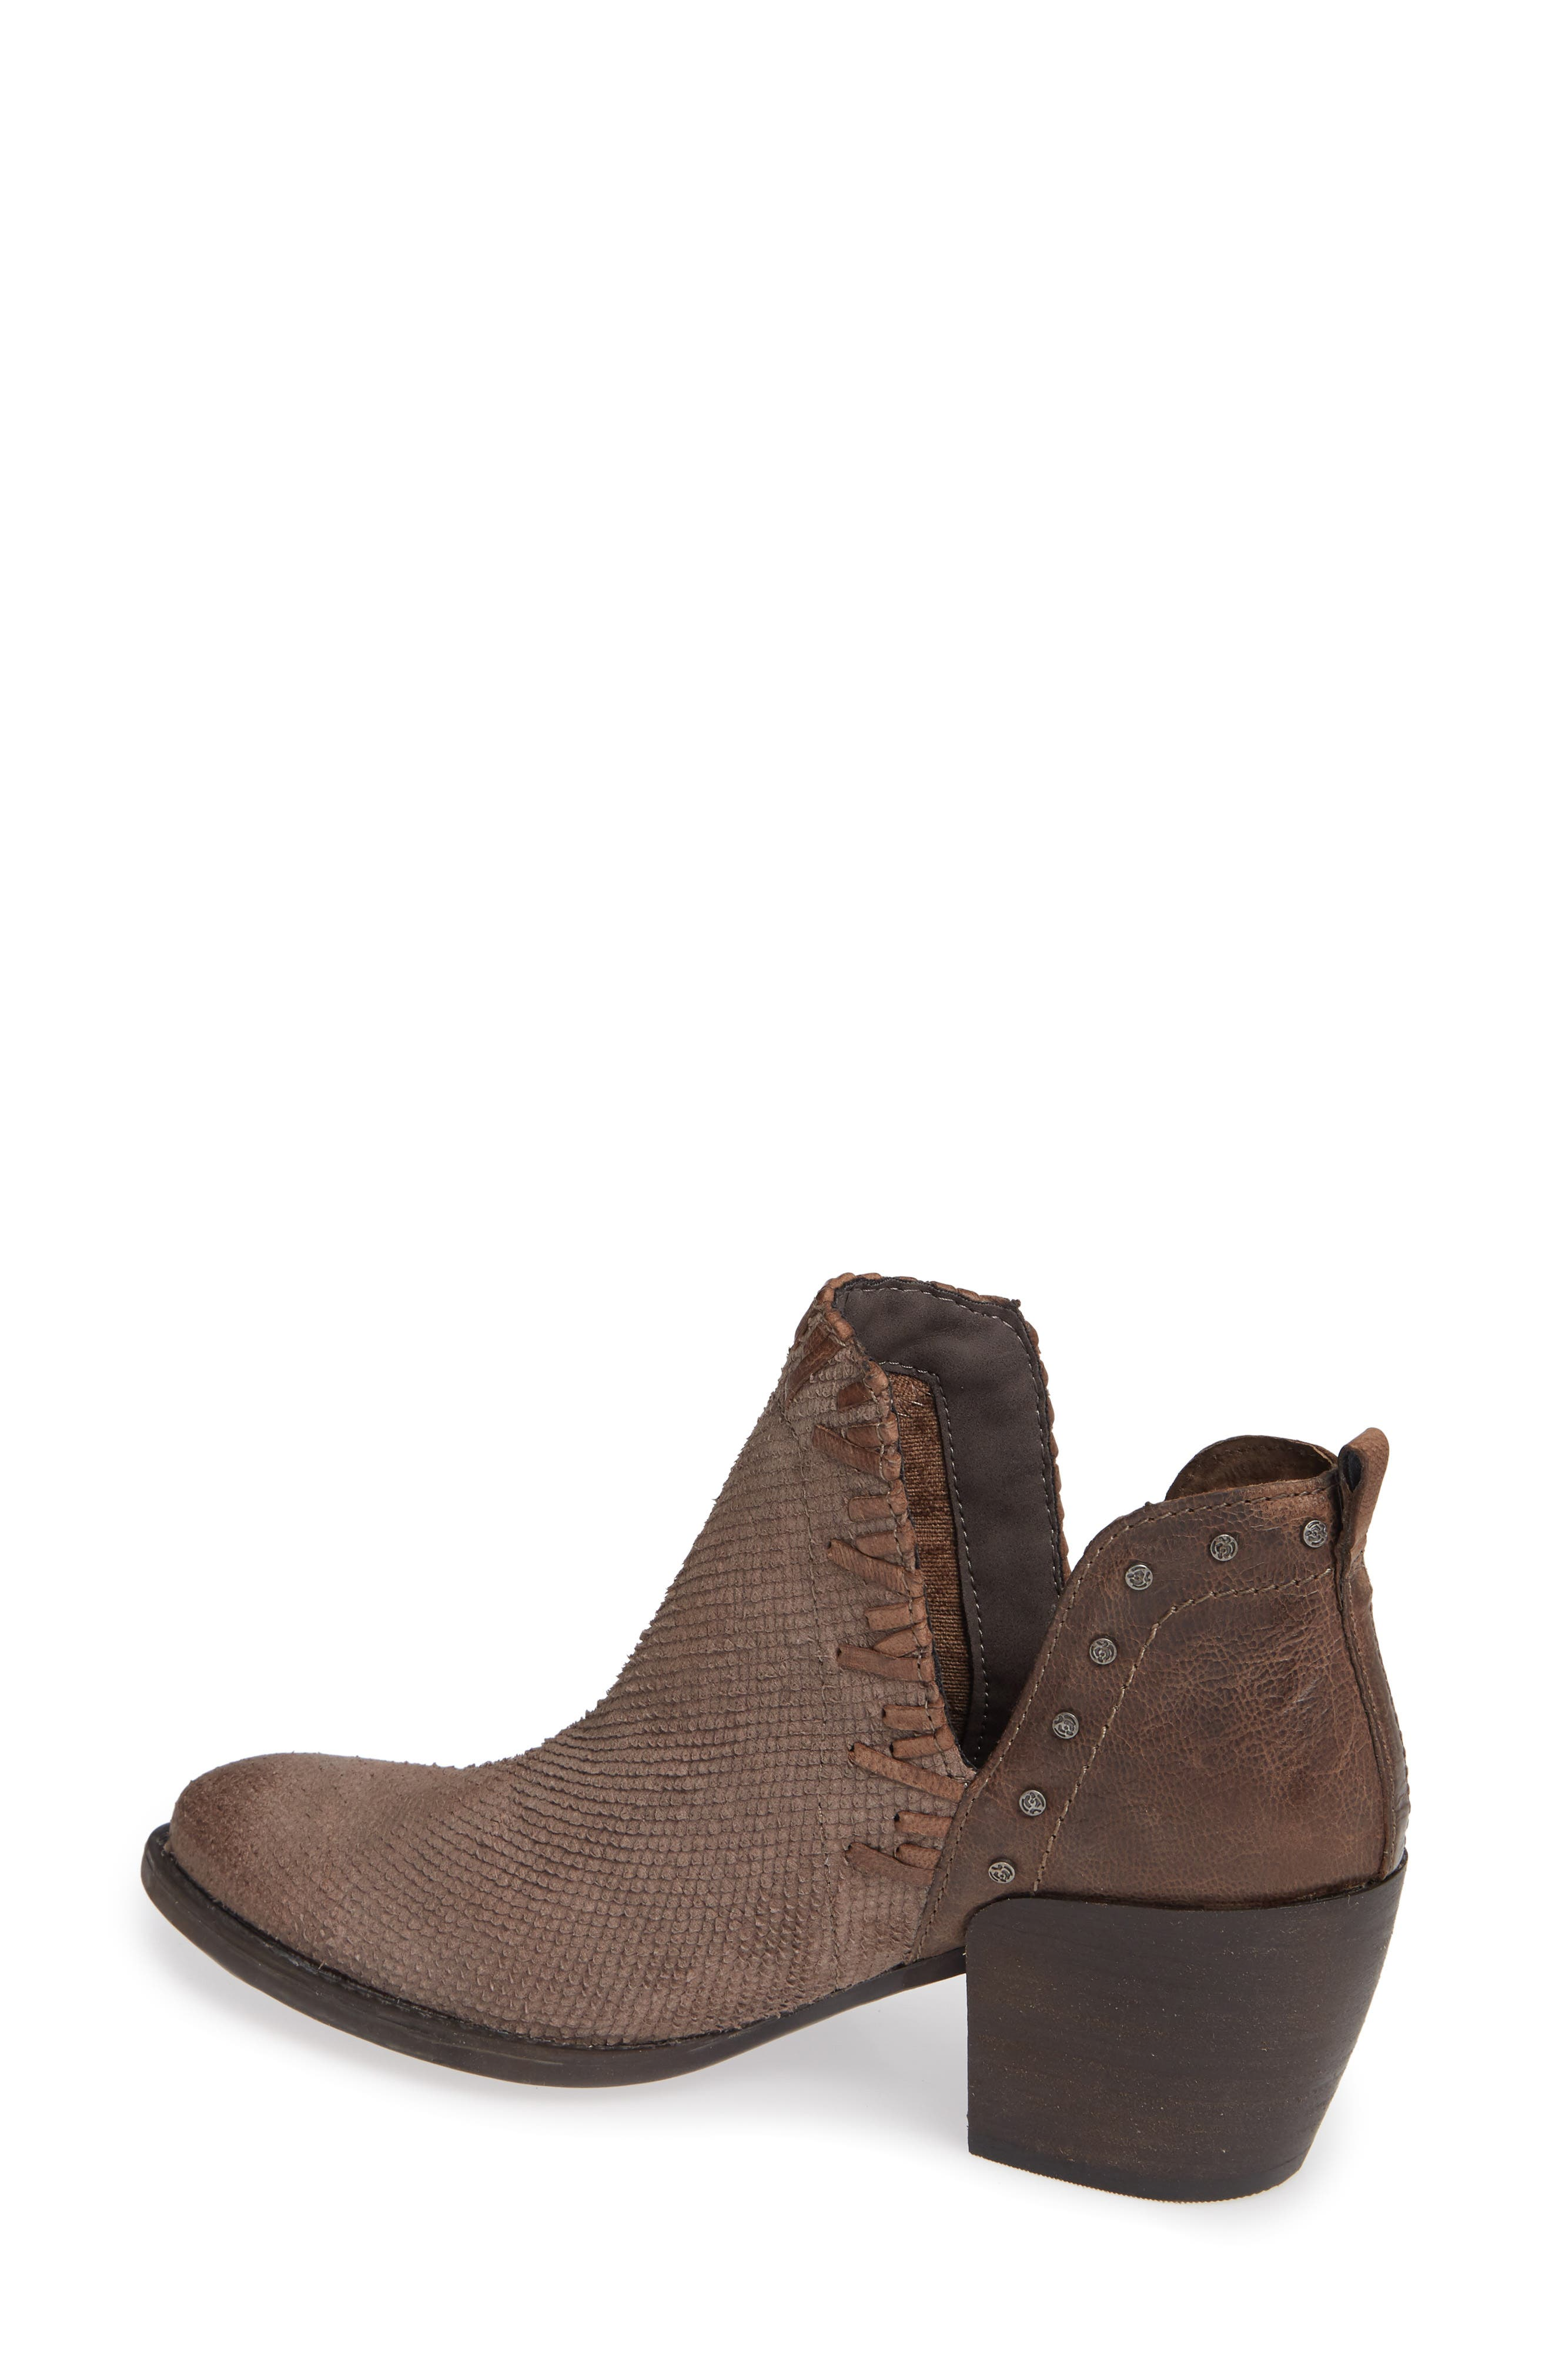 Santa Fe Ankle Bootie,                             Alternate thumbnail 2, color,                             CINDER LEATHER